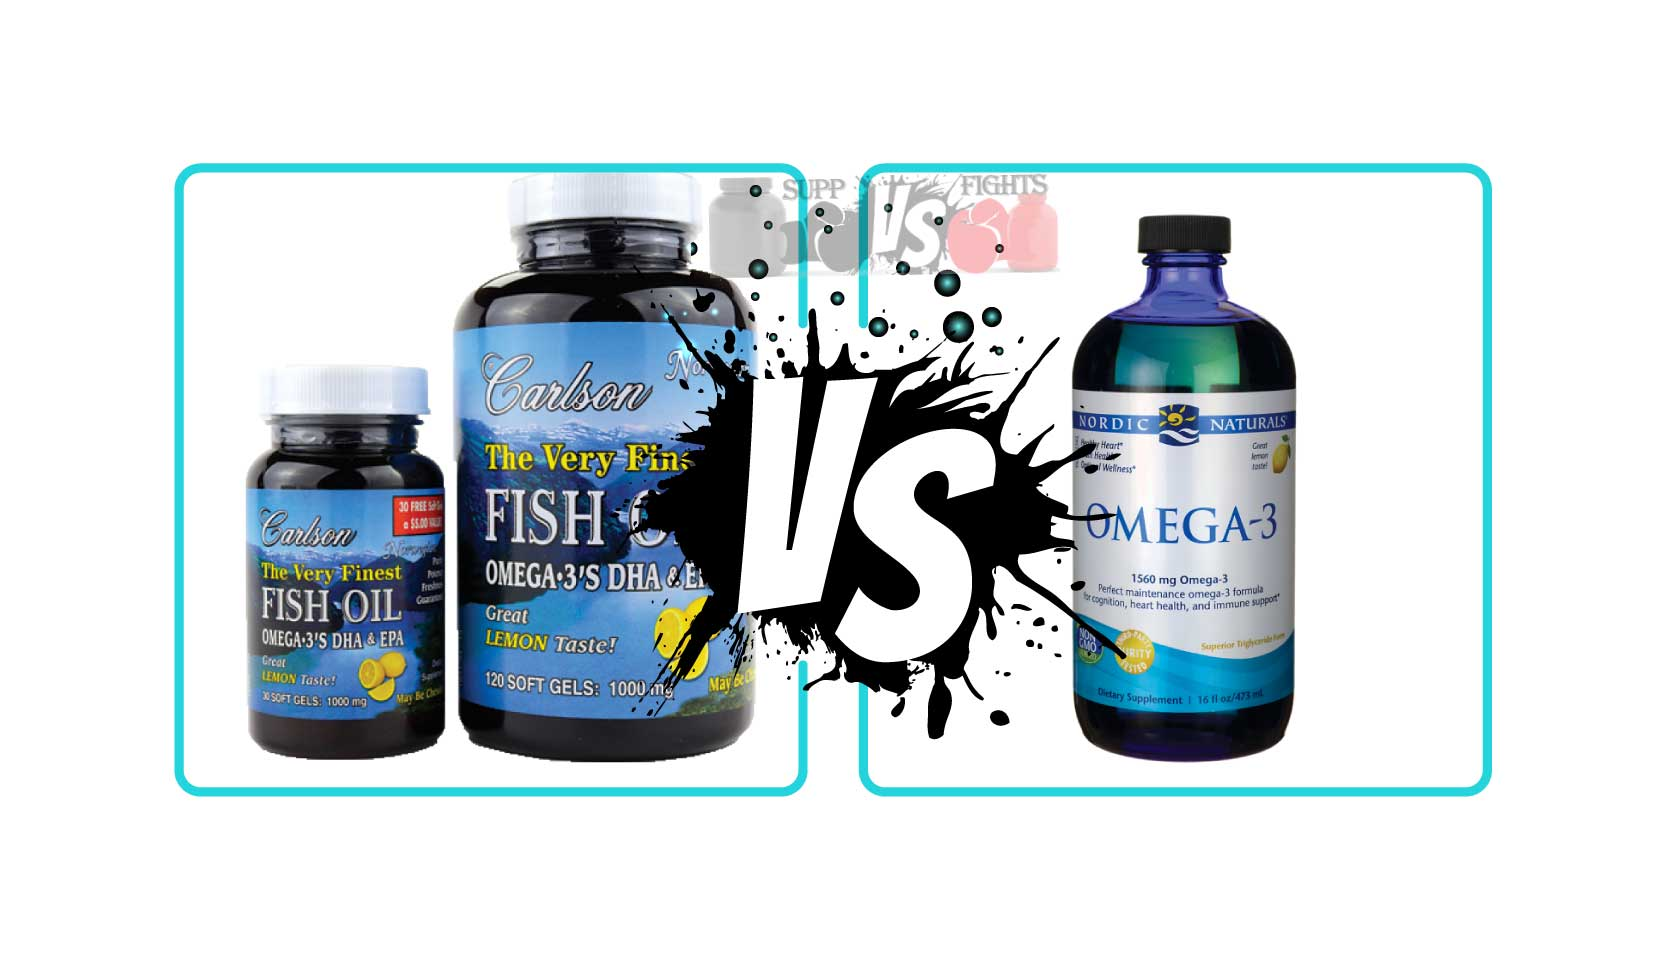 Carlson labs fish oil vs nordic naturals fish oil for Why do people take fish oil